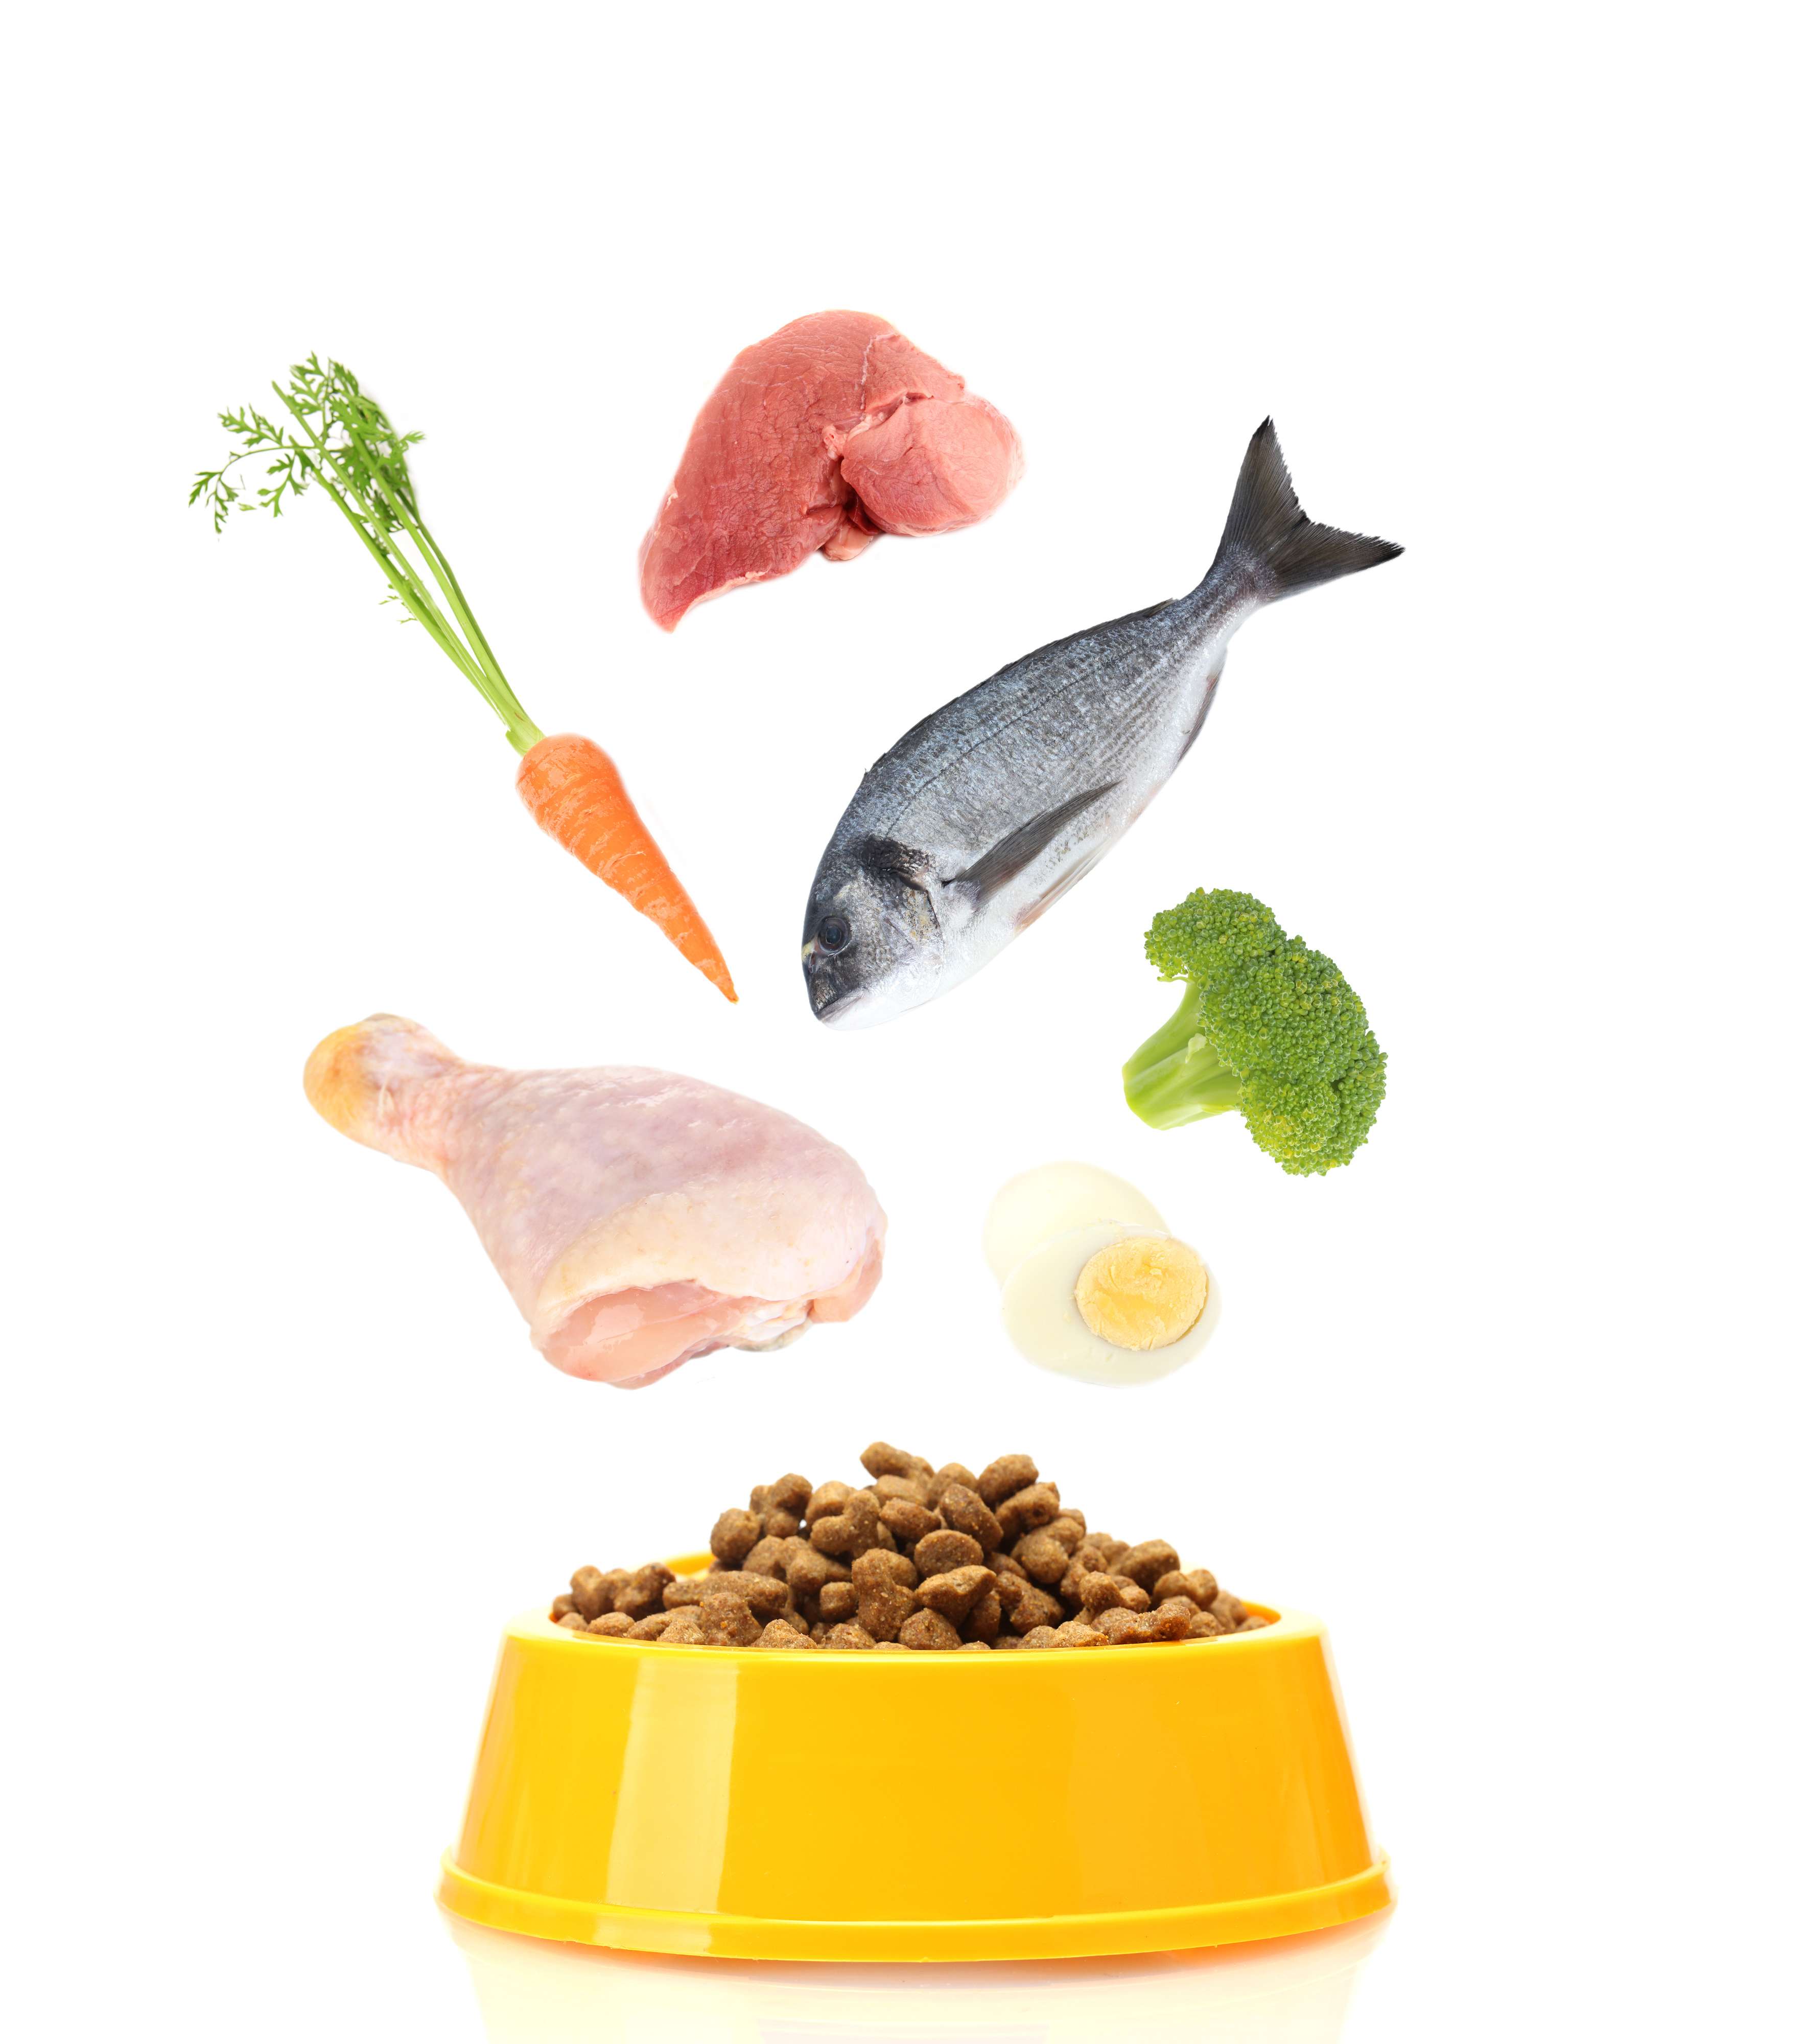 An image of a yellow cat bowl showing different ingredients going in